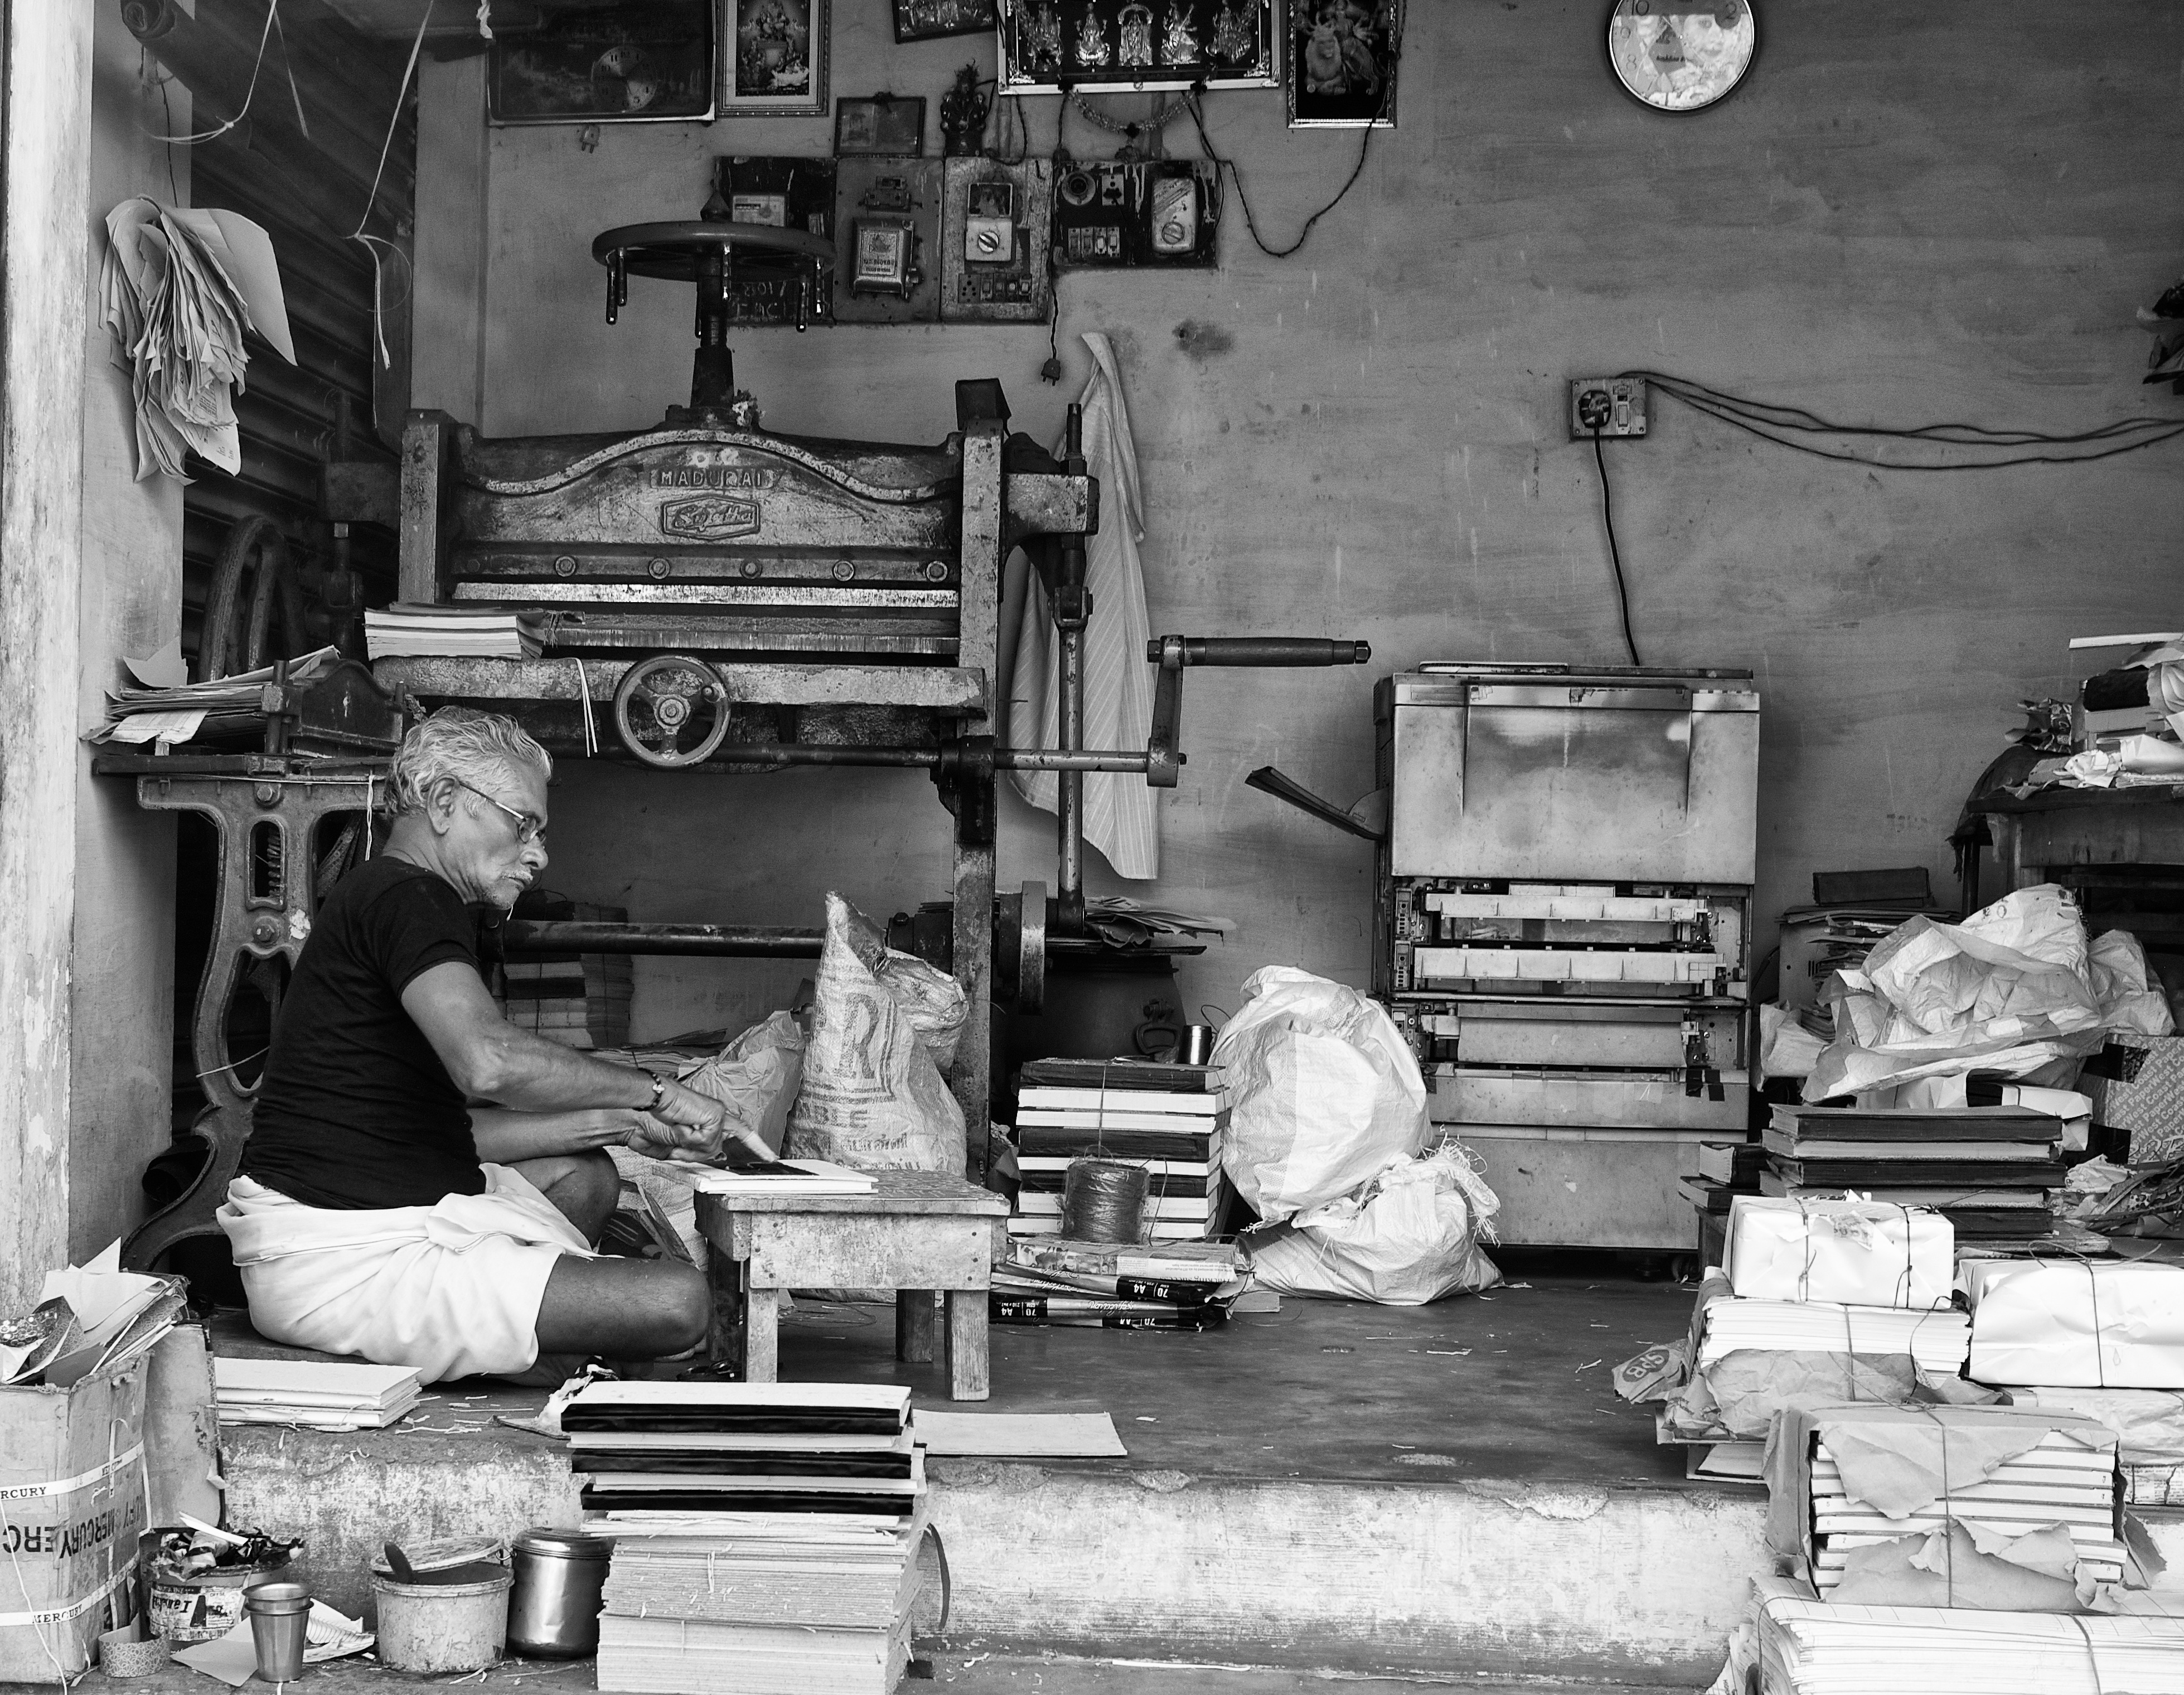 A shopkeeper at work in his bookbinding workshop,  Madurai, Tamil Nadu, India